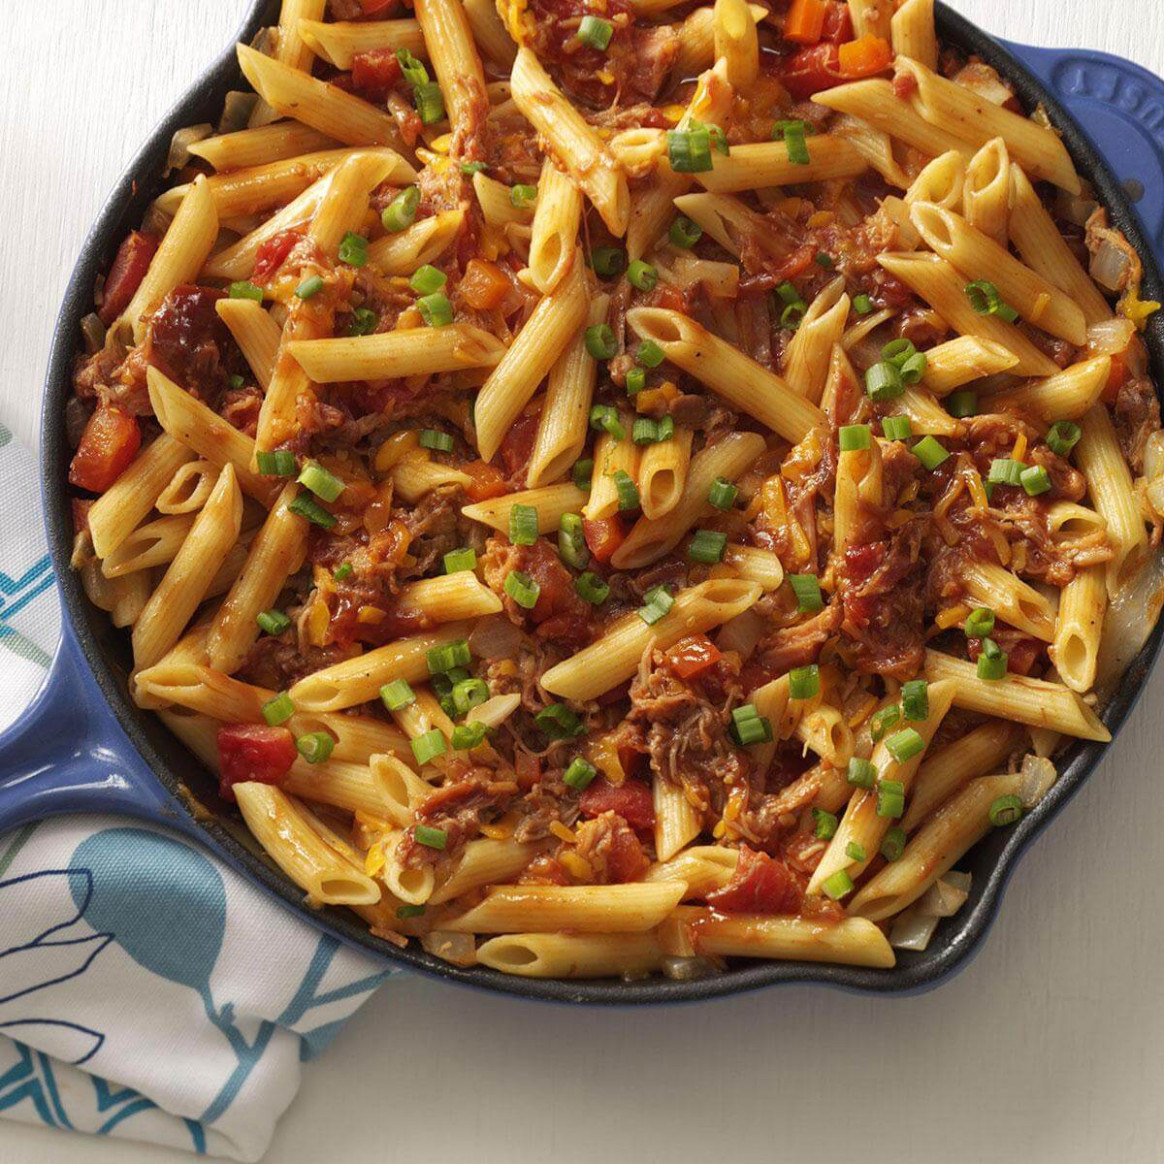 Barbecue Pork And Penne Skillet Recipe Taste Of Home Cooking C - Chicken Recipes Taste Of Home